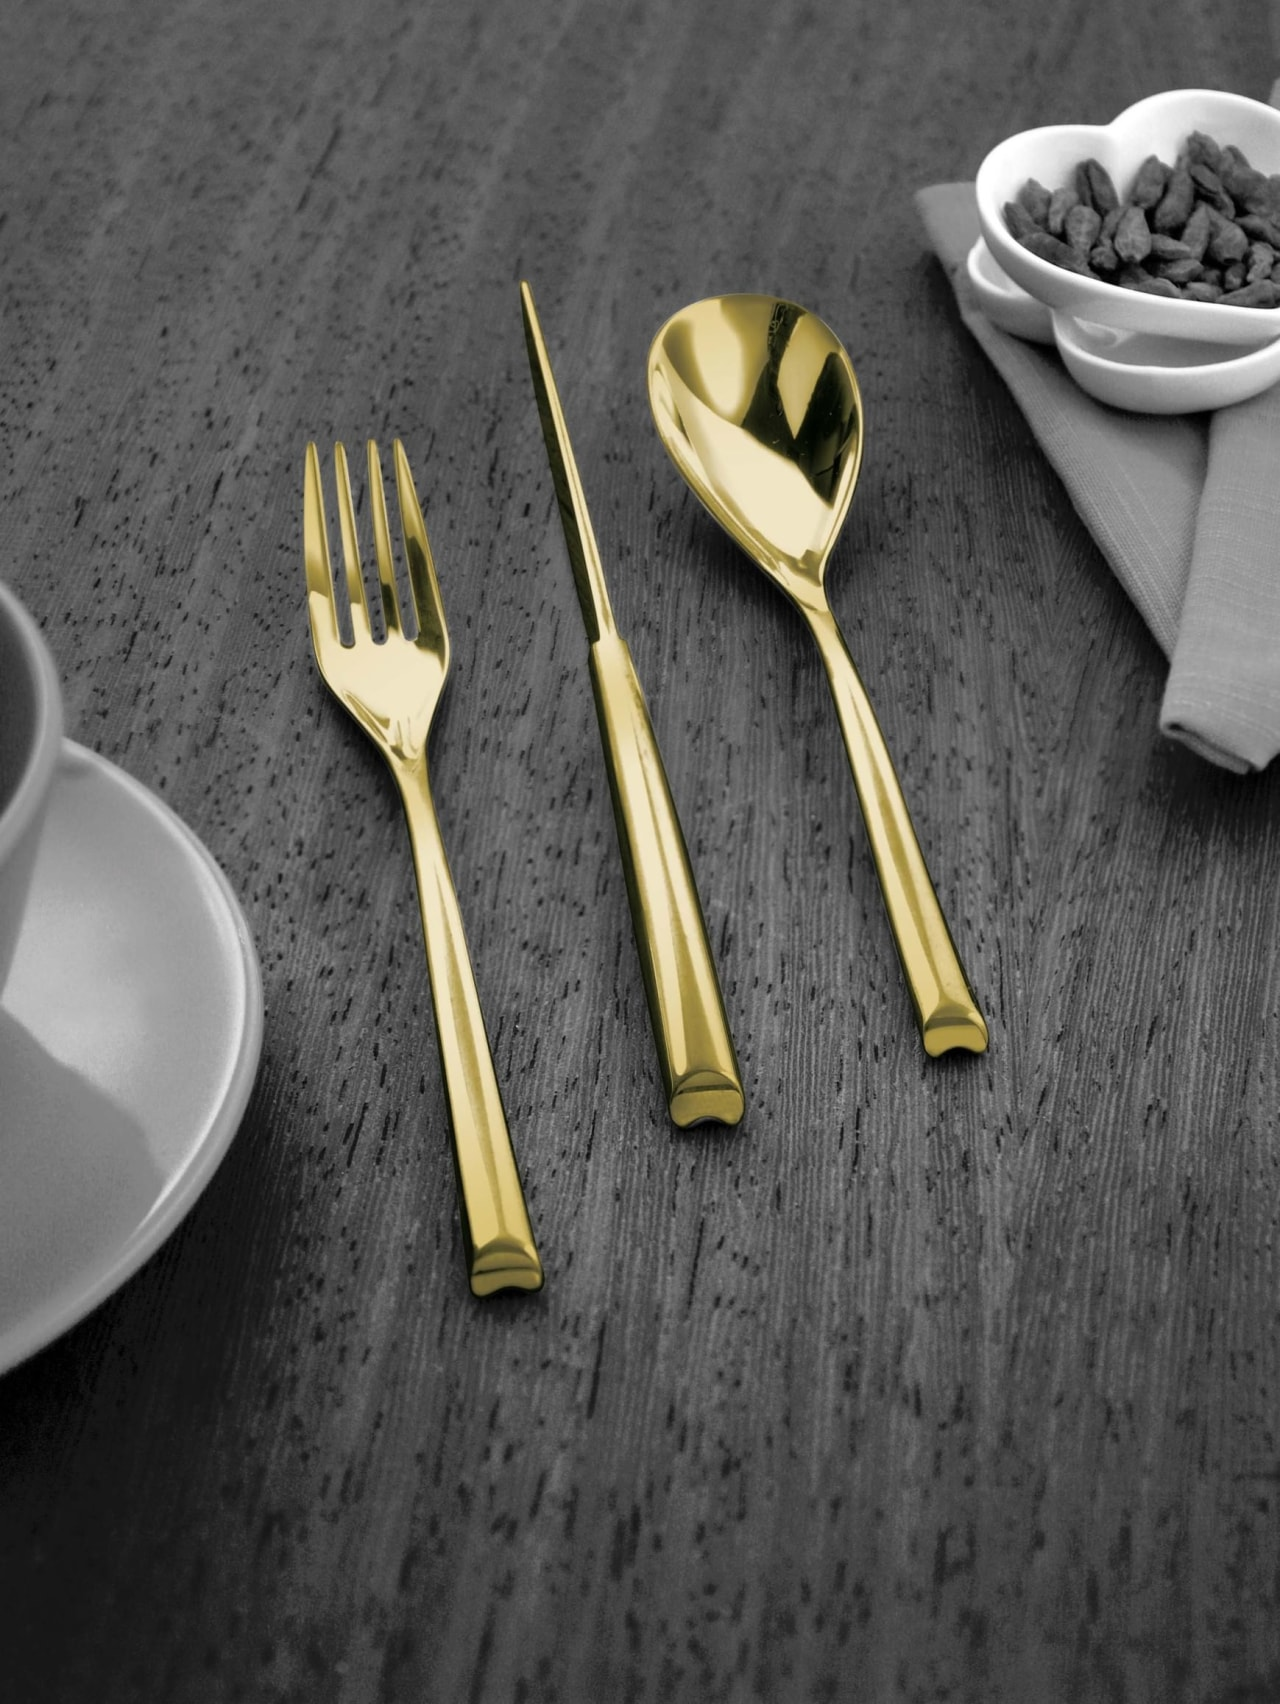 A selection from The Studio of Tableware cutlery, fork, product, spoon, tableware, black, gray